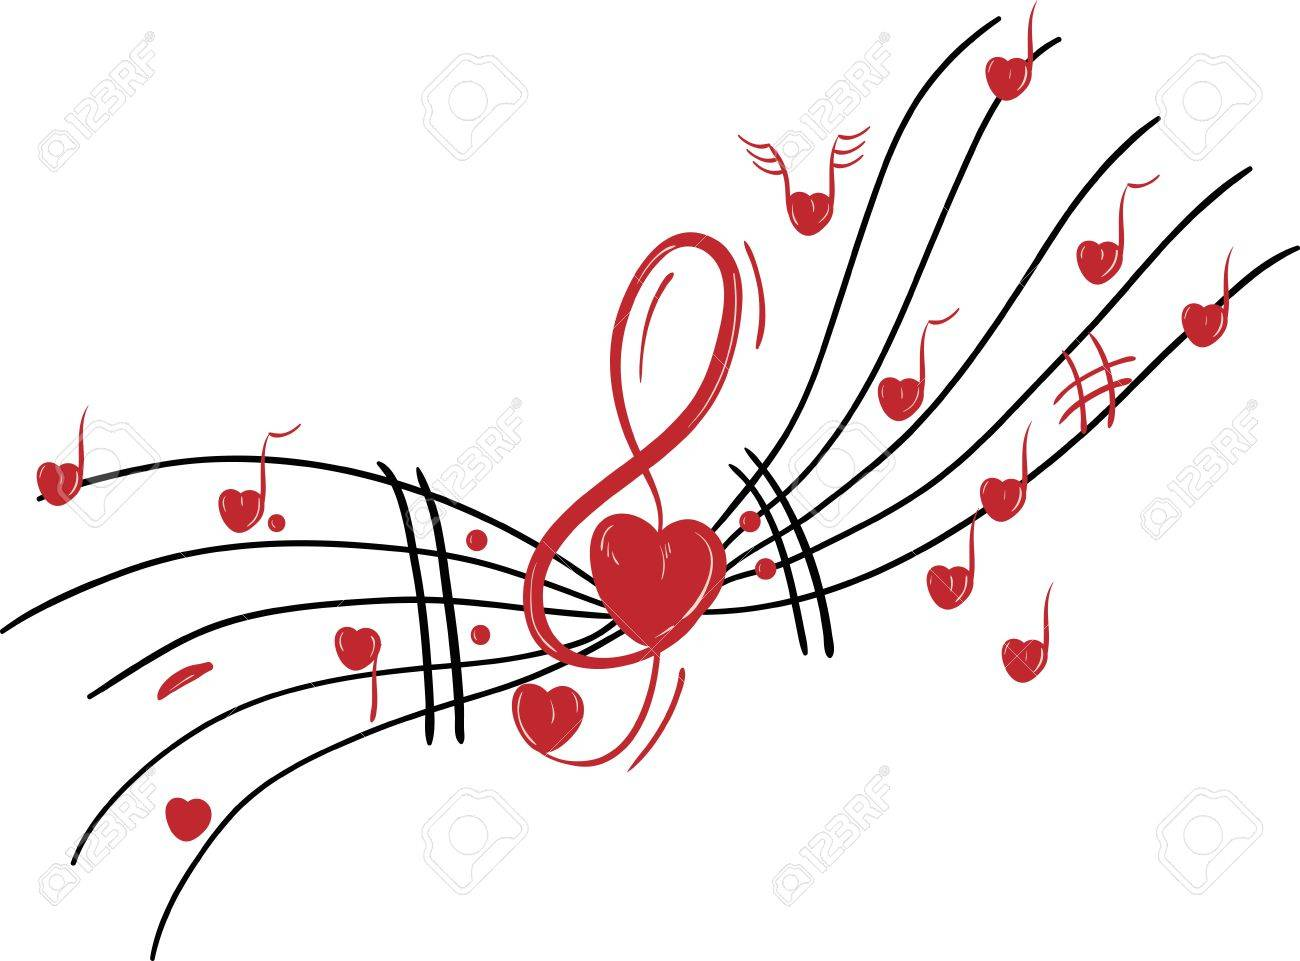 vector musical notes valentine theme hearts royalty free